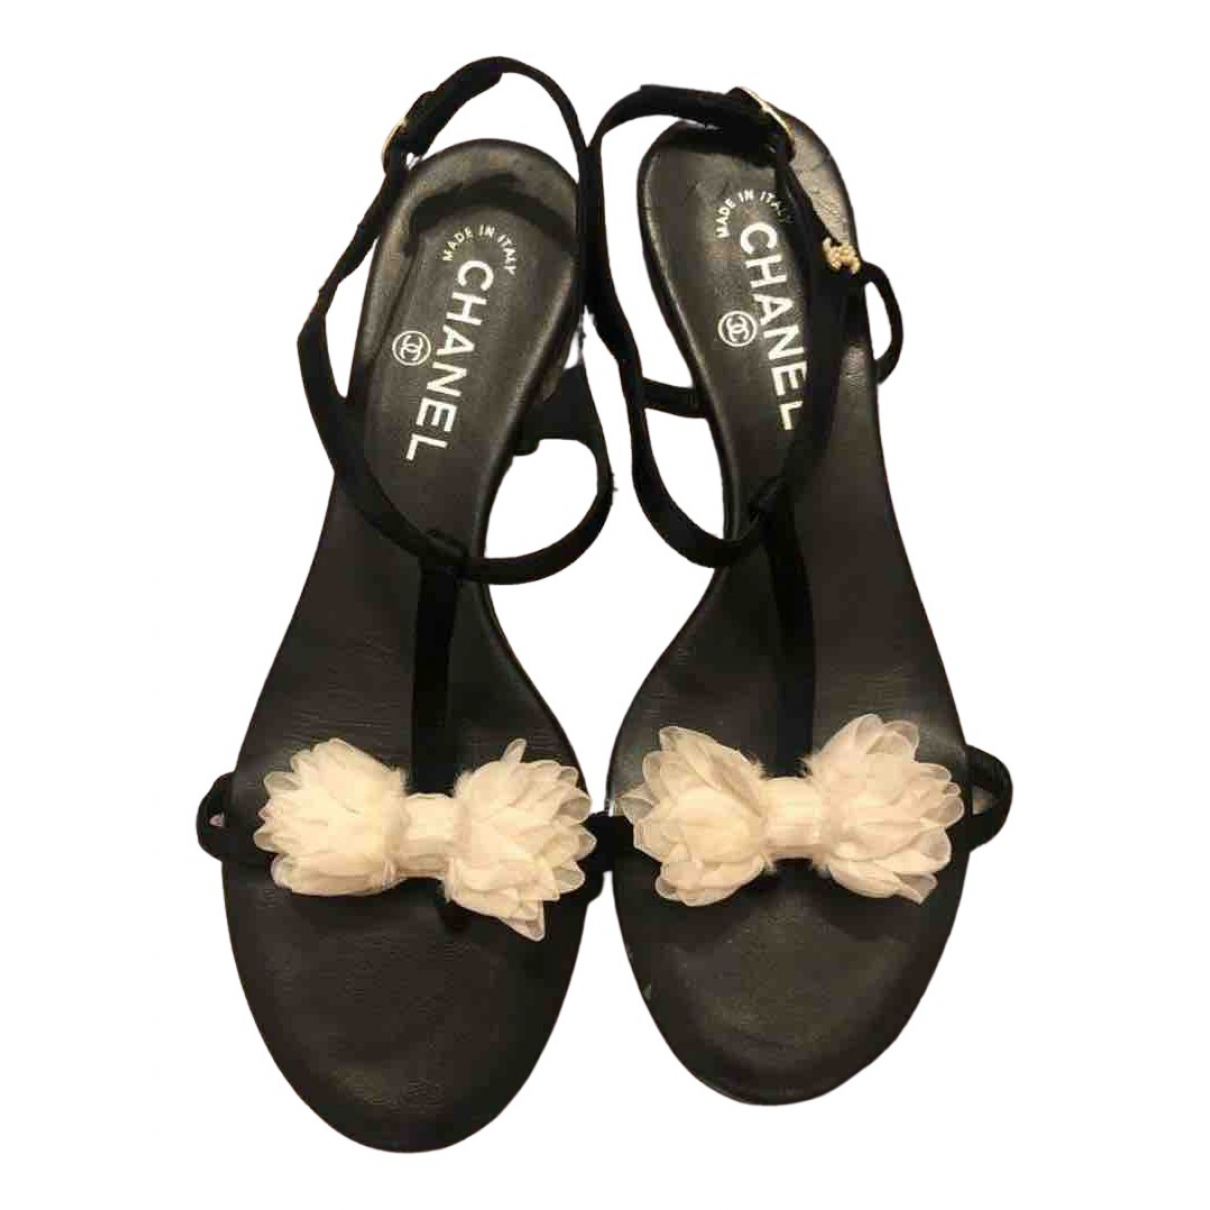 Chanel N Black Leather Sandals for Women 39 EU